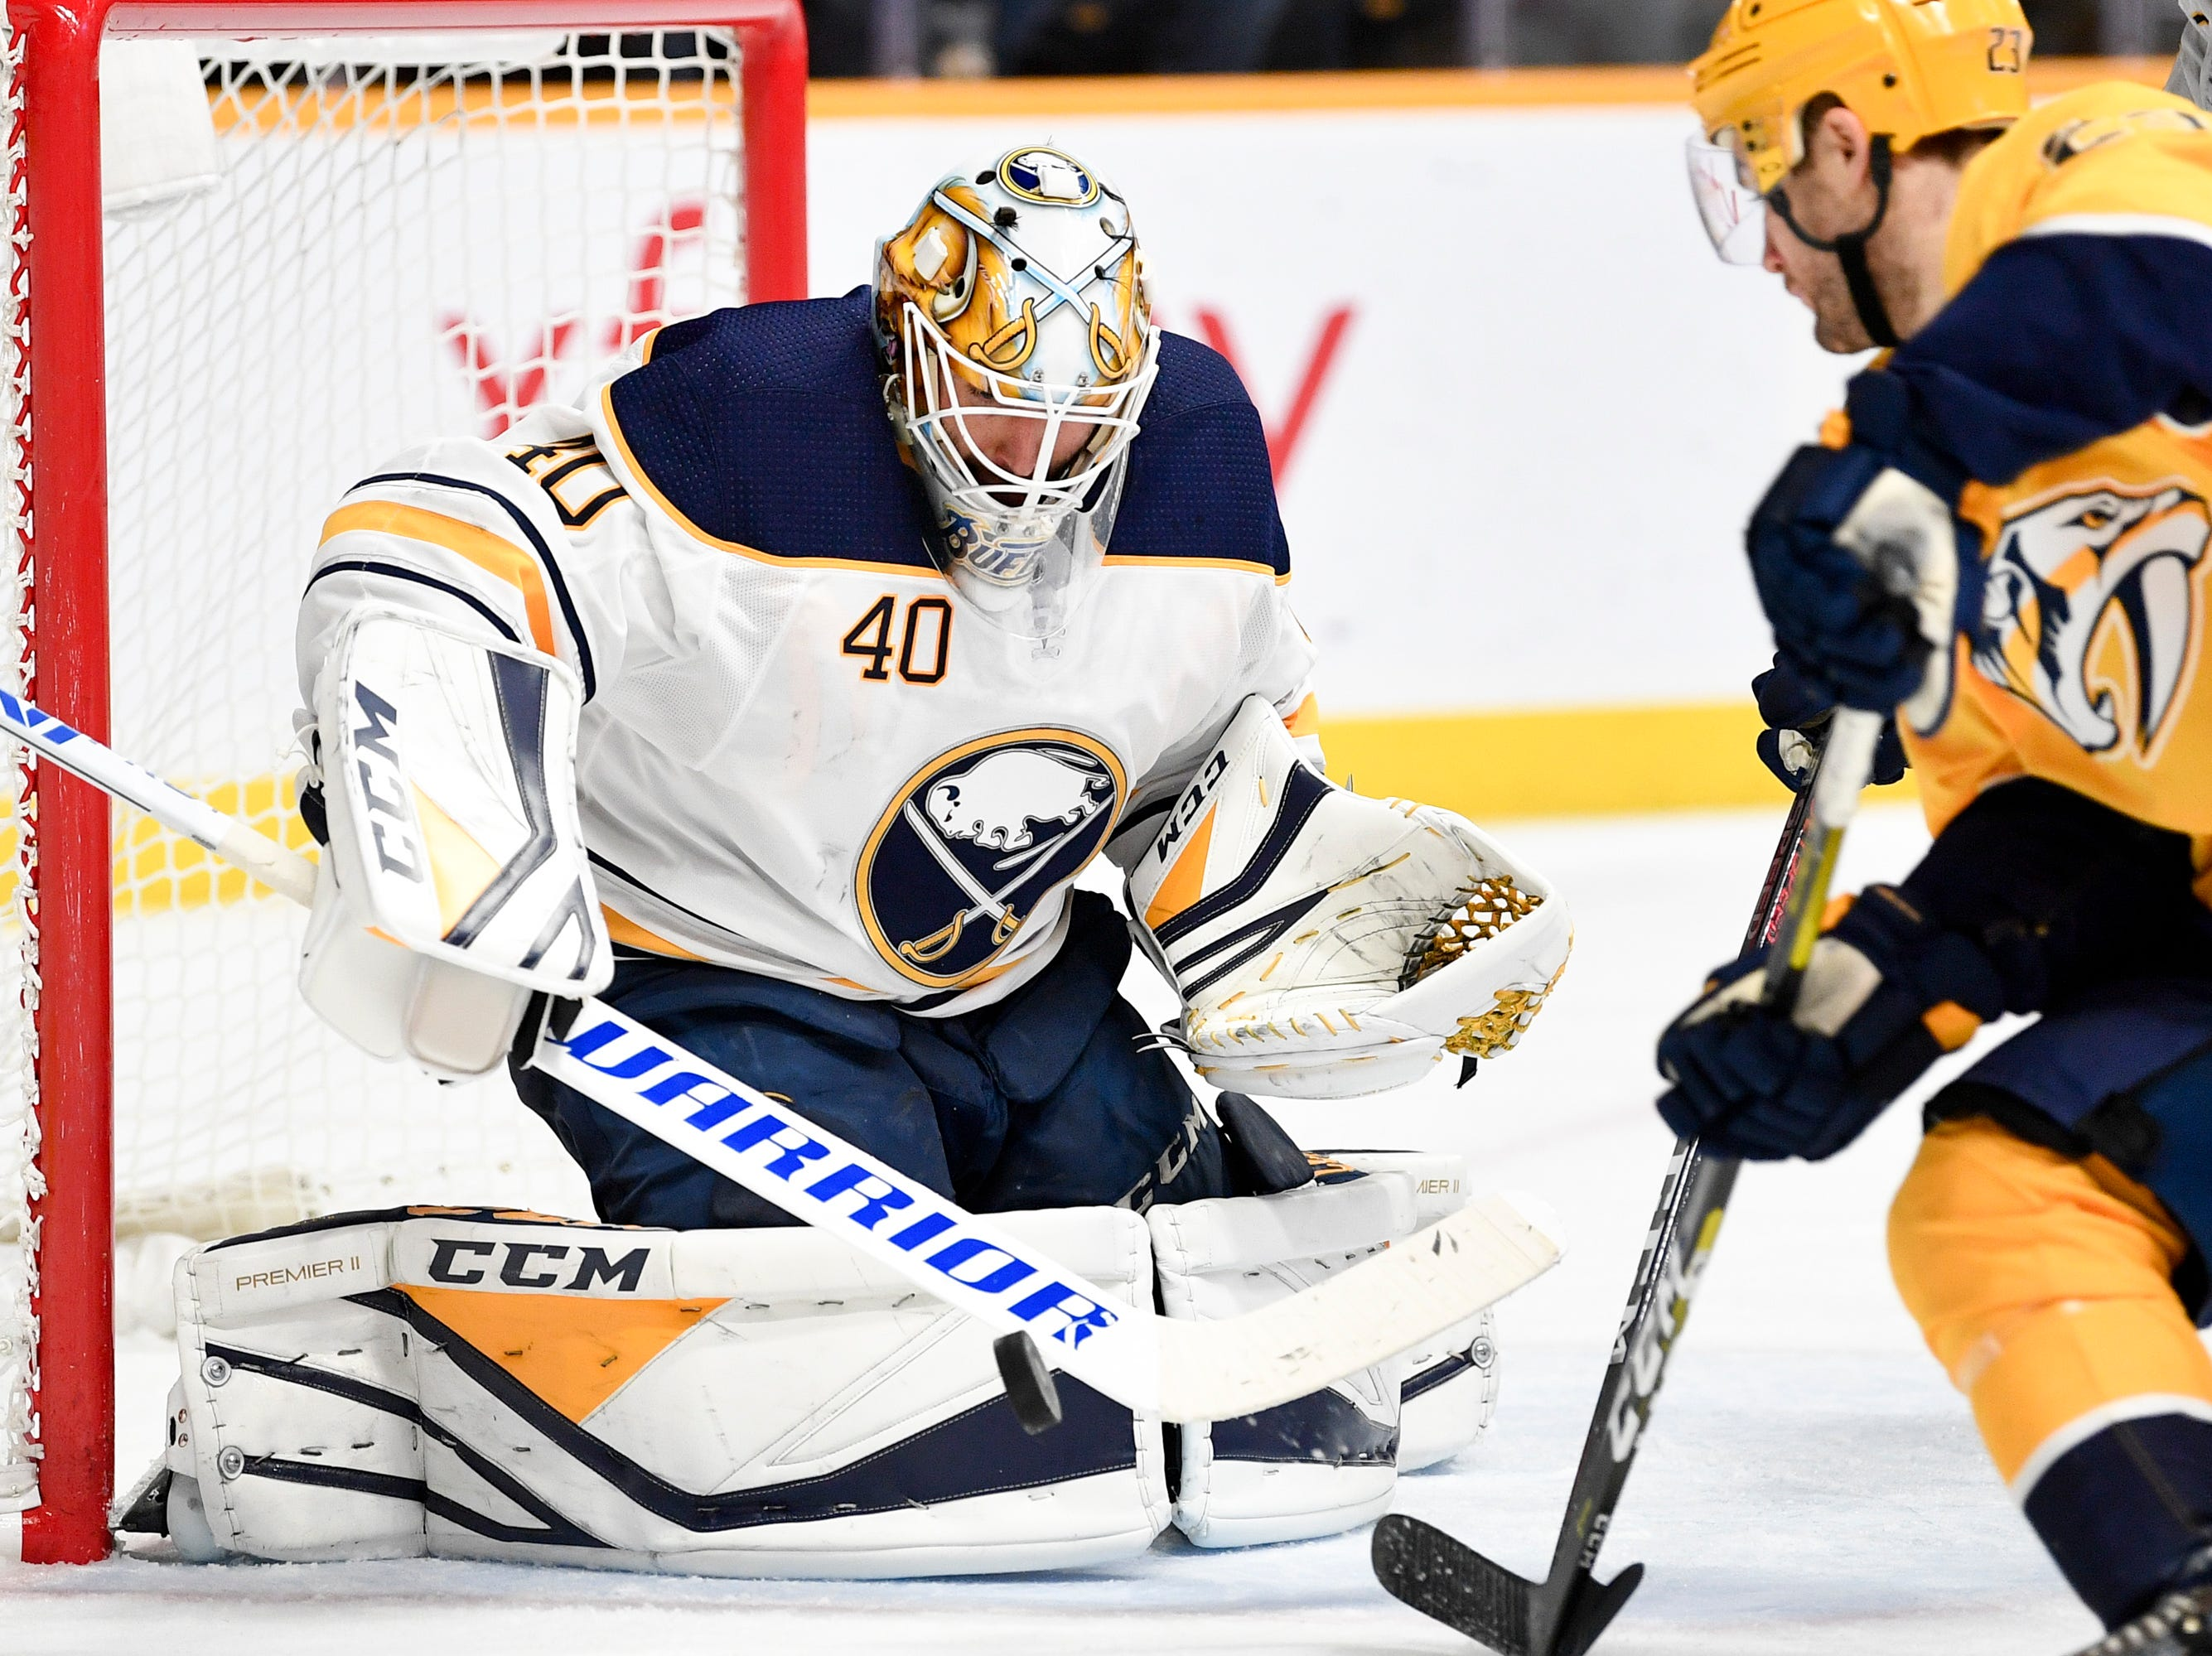 Buffalo Sabres goaltender Carter Hutton (40) defends against Nashville Predators center Rocco Grimaldi (23) during the third period at Bridgestone Arena in Nashville, Tenn., Monday, Dec. 3, 2018.